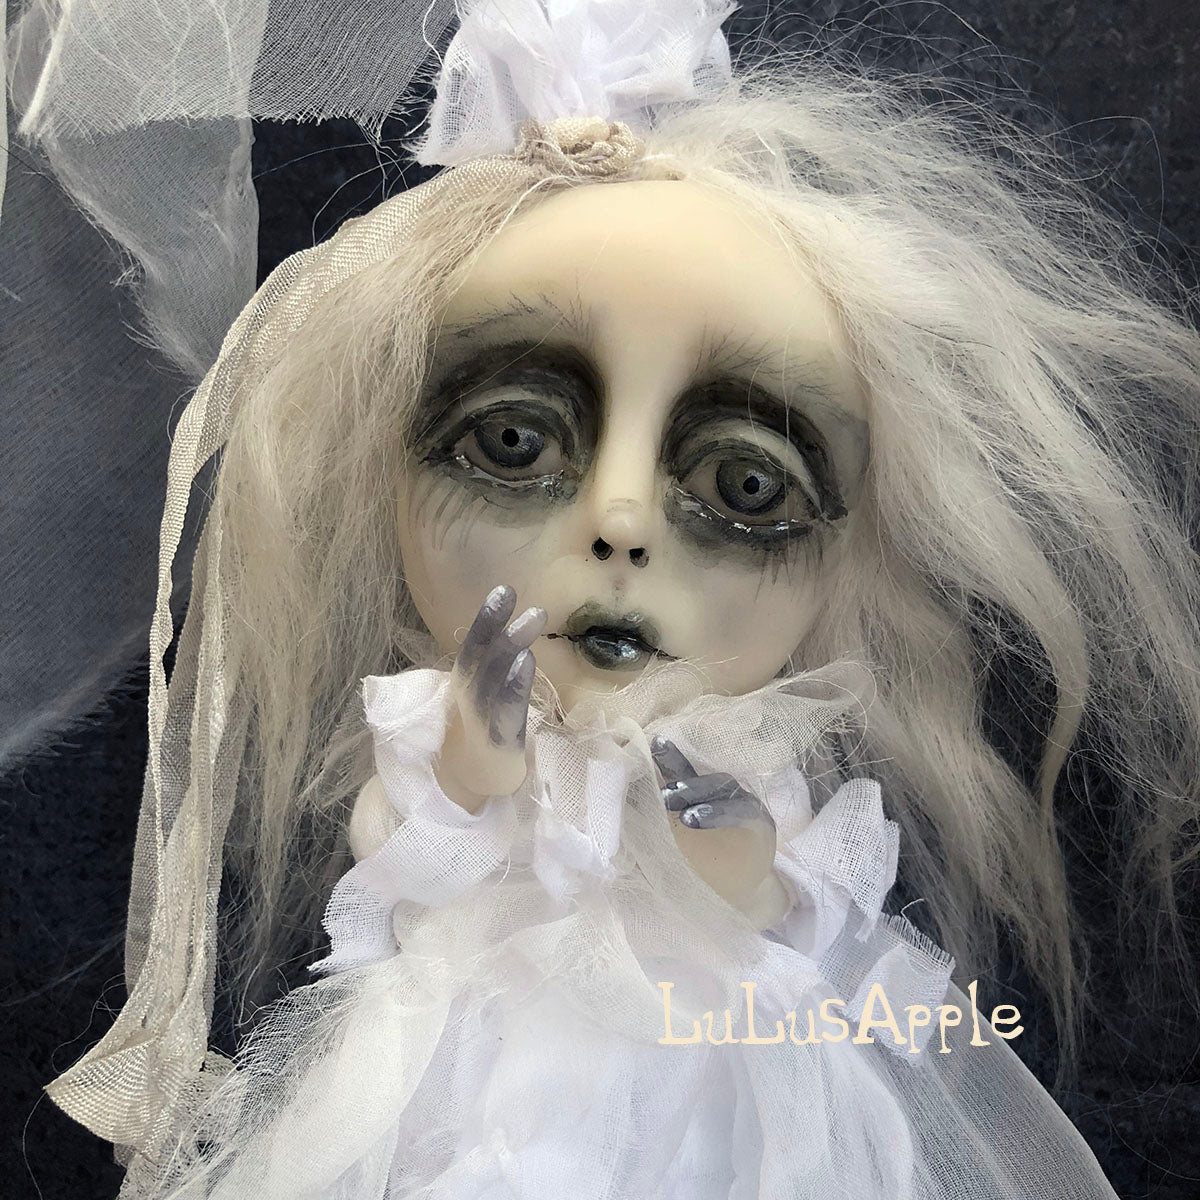 Delli Ghostly girl of Penchant Place  Mini OOAK LuLusApple Art Doll